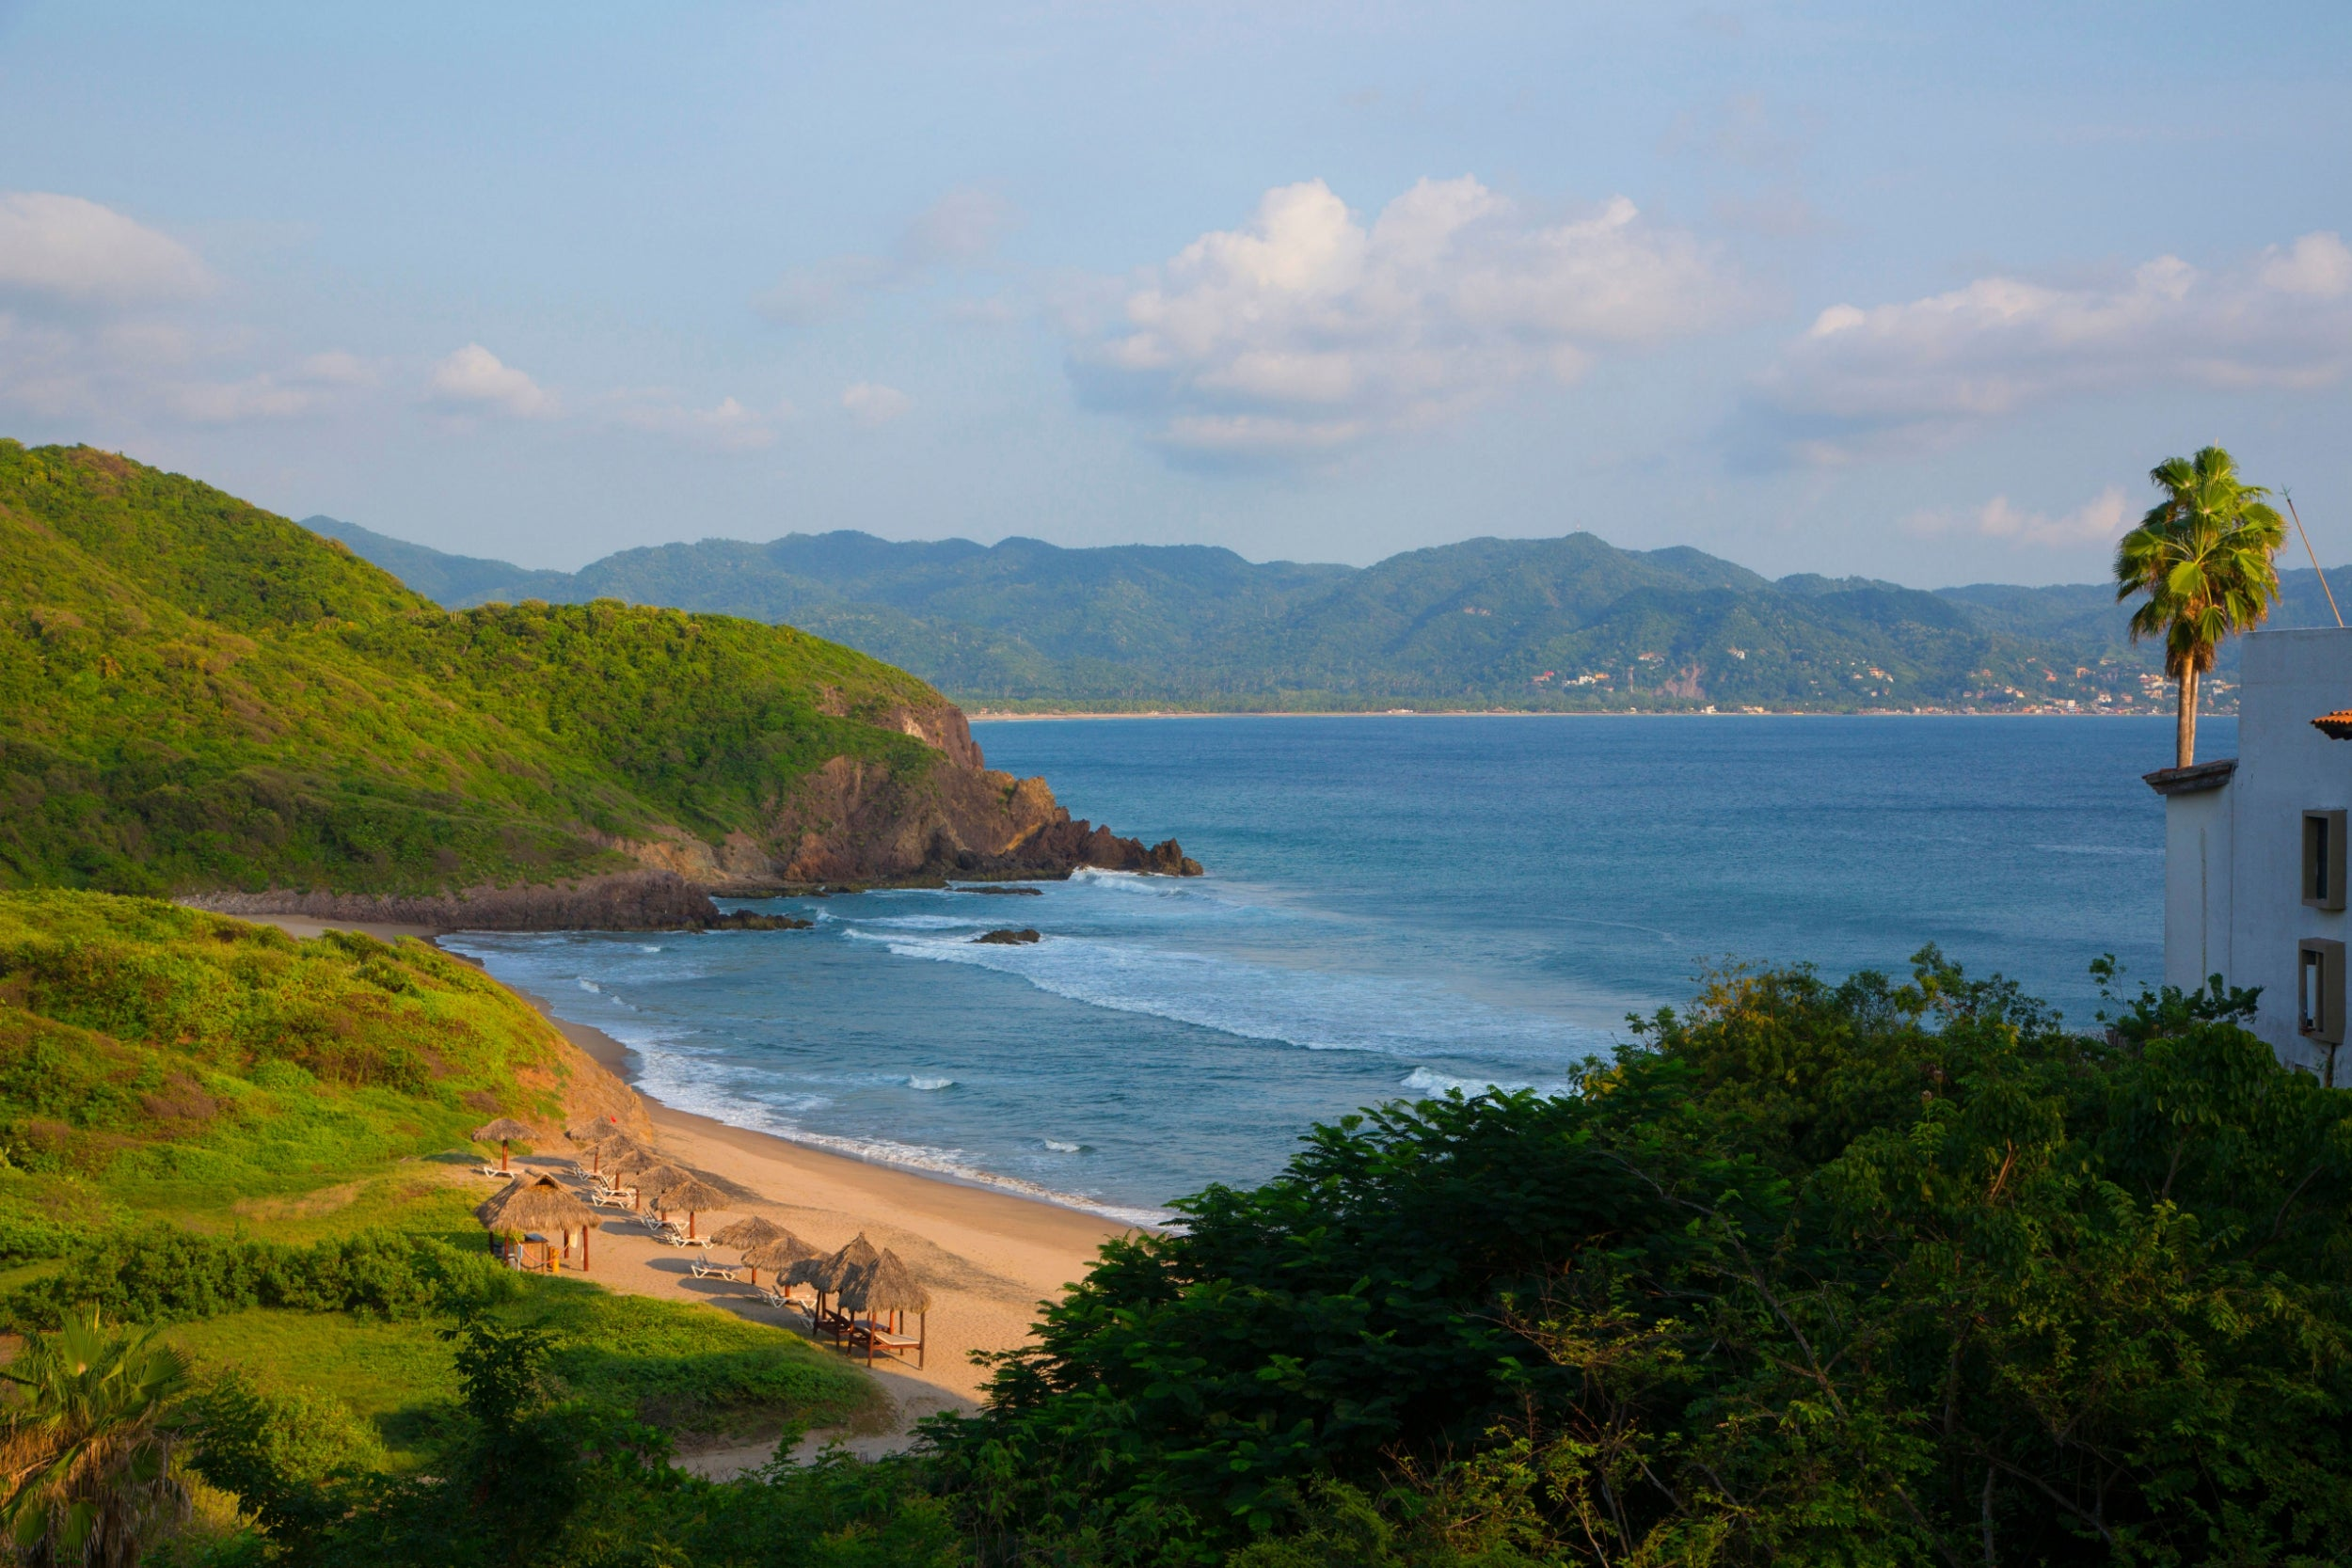 Costalegre, Mexico: A beach vacation, without the crowds